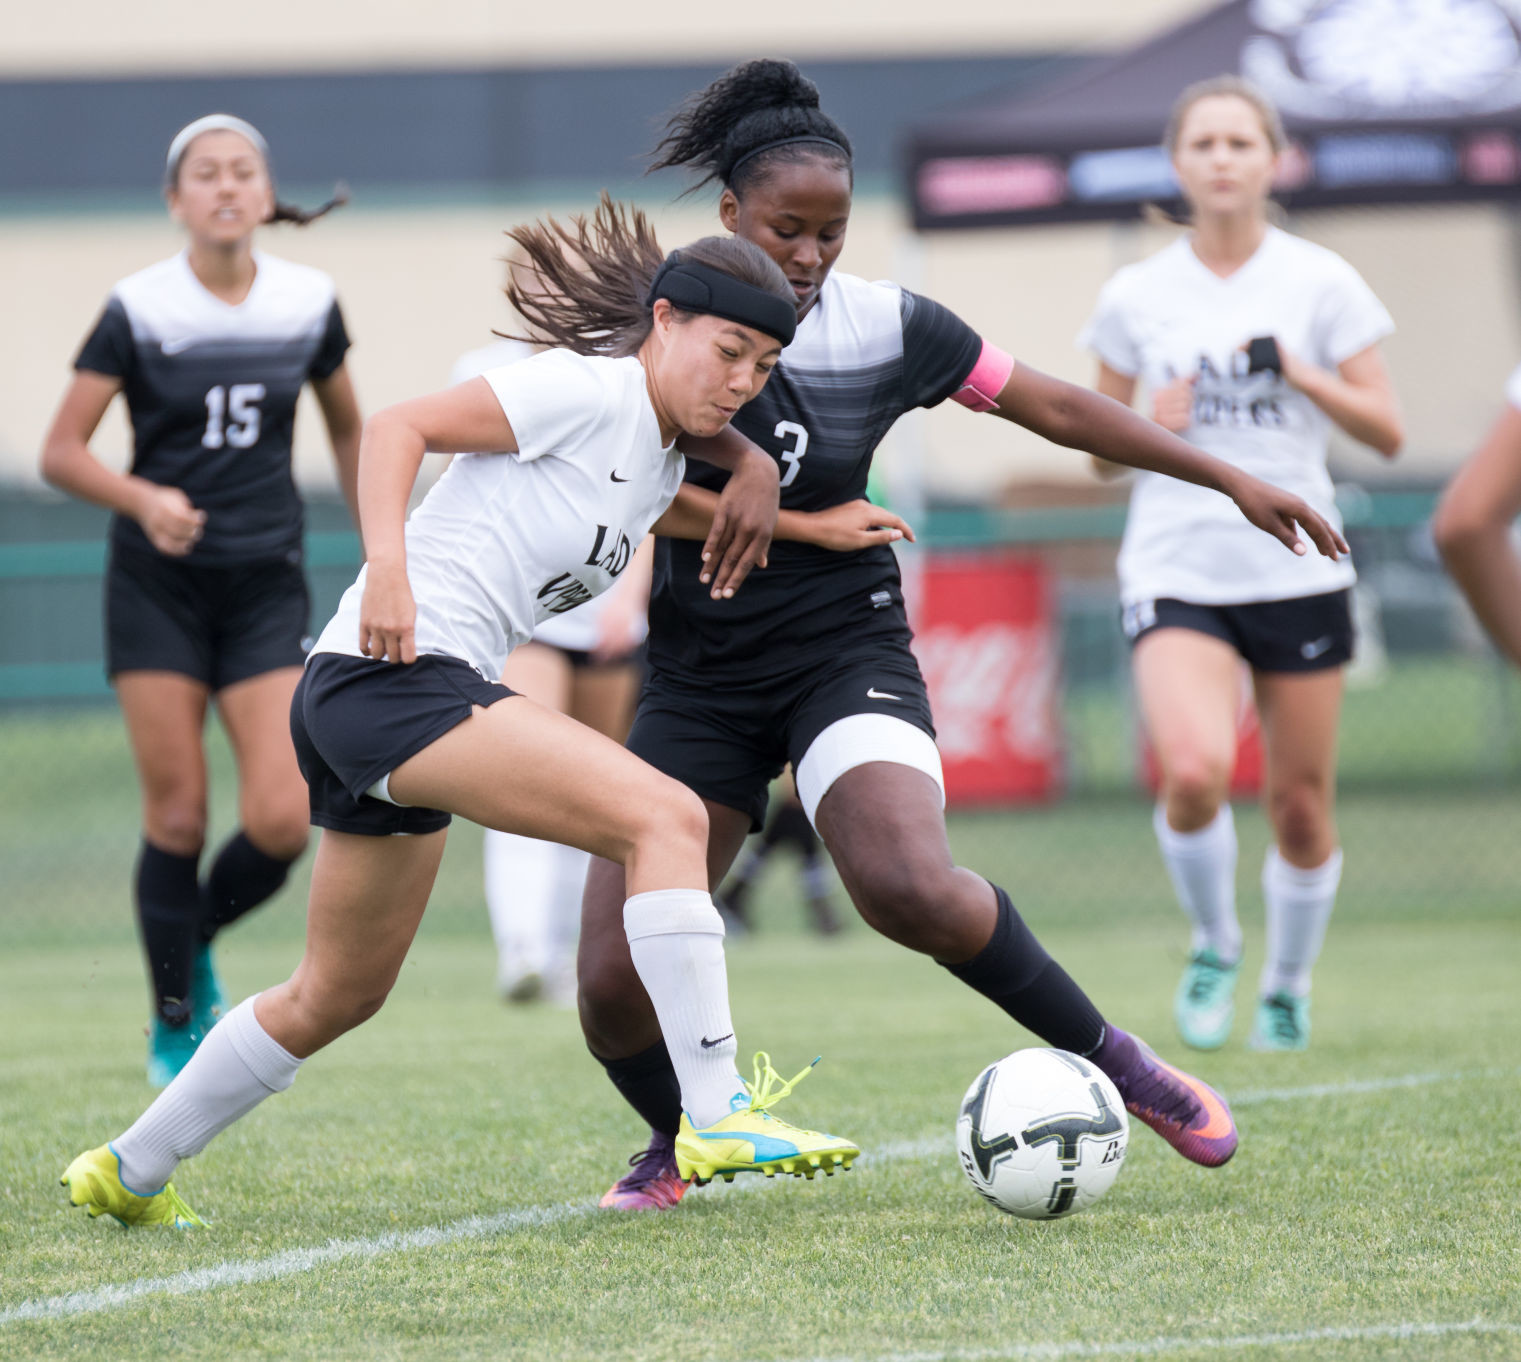 Vandegrift Vipers sophomore defender Brooke McArthur (1) battles Steele Knights senior forward Caleigha Callahan (3) for possession during a high school girls playoff soccer game between the Vandegrift Vipers and the Cibolo Steele Knights at the Blossom Athletic Center in San Antonio, Texas, on April 8, 2017. Vandegrift won 2-0.